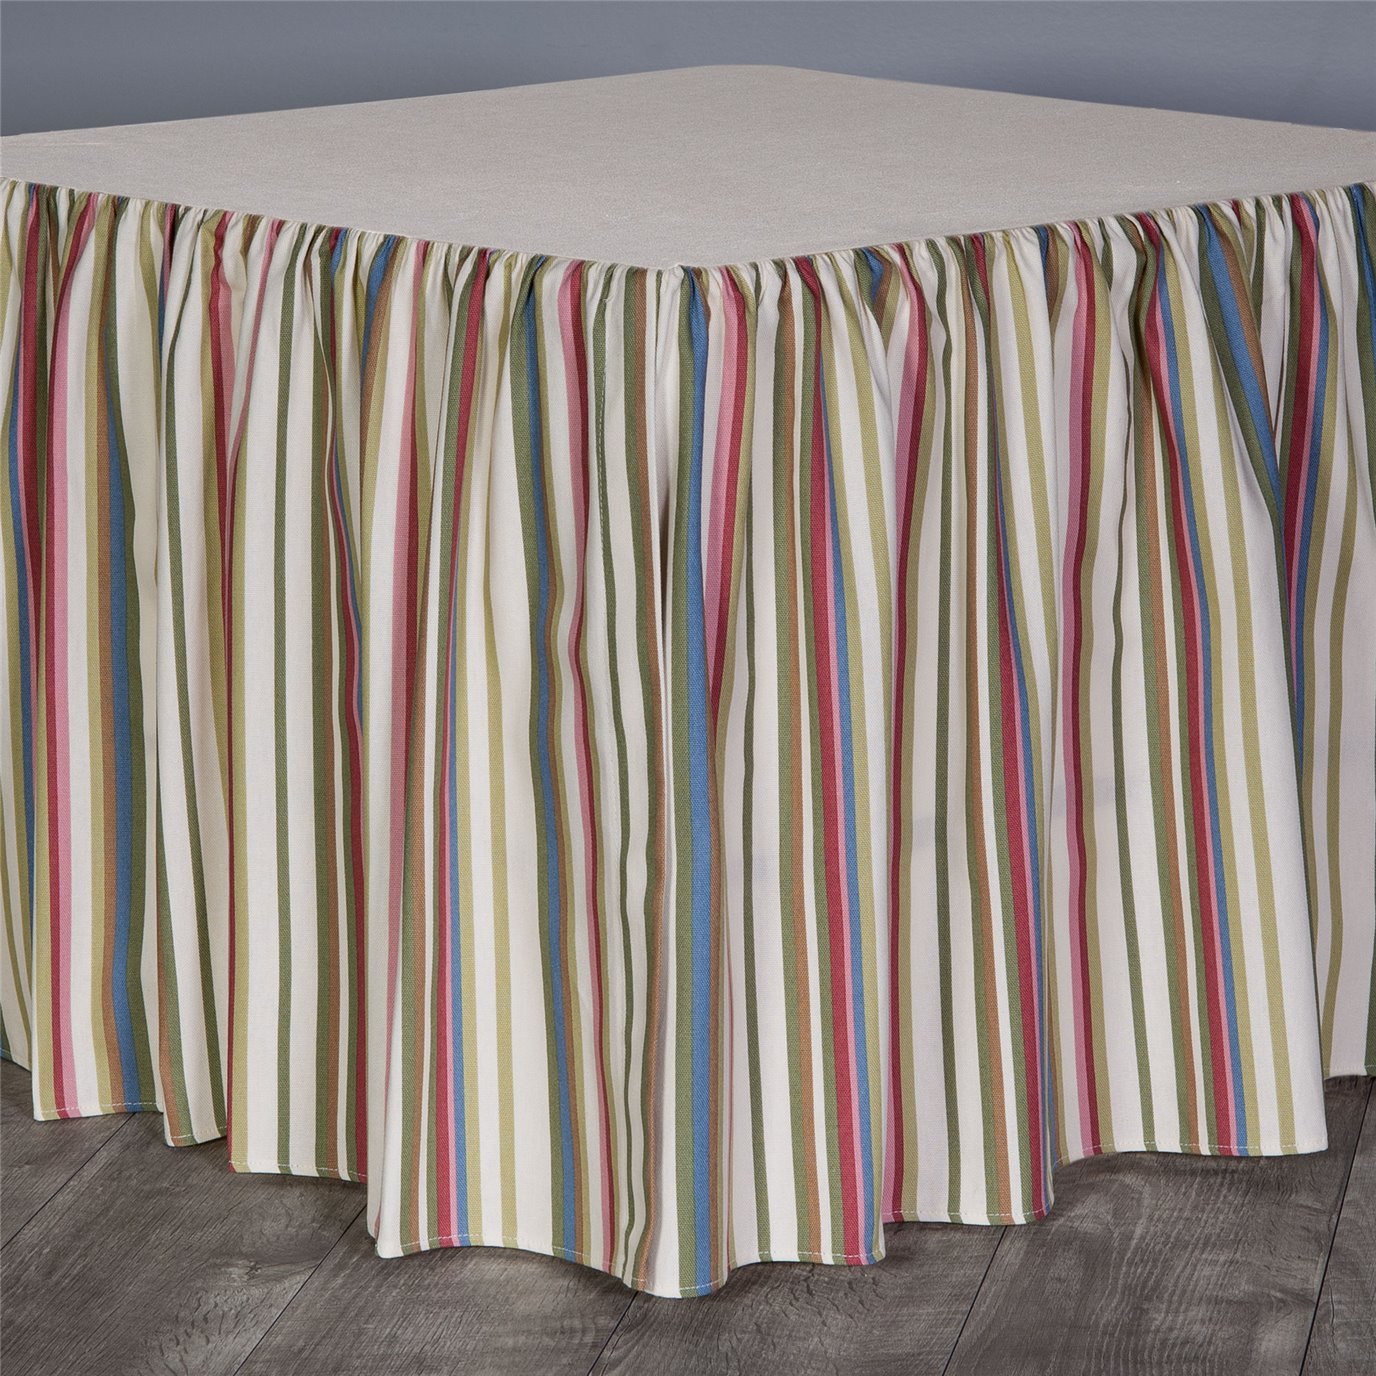 "Hillhouse Stripe Cal King 15"" Bed skirt"